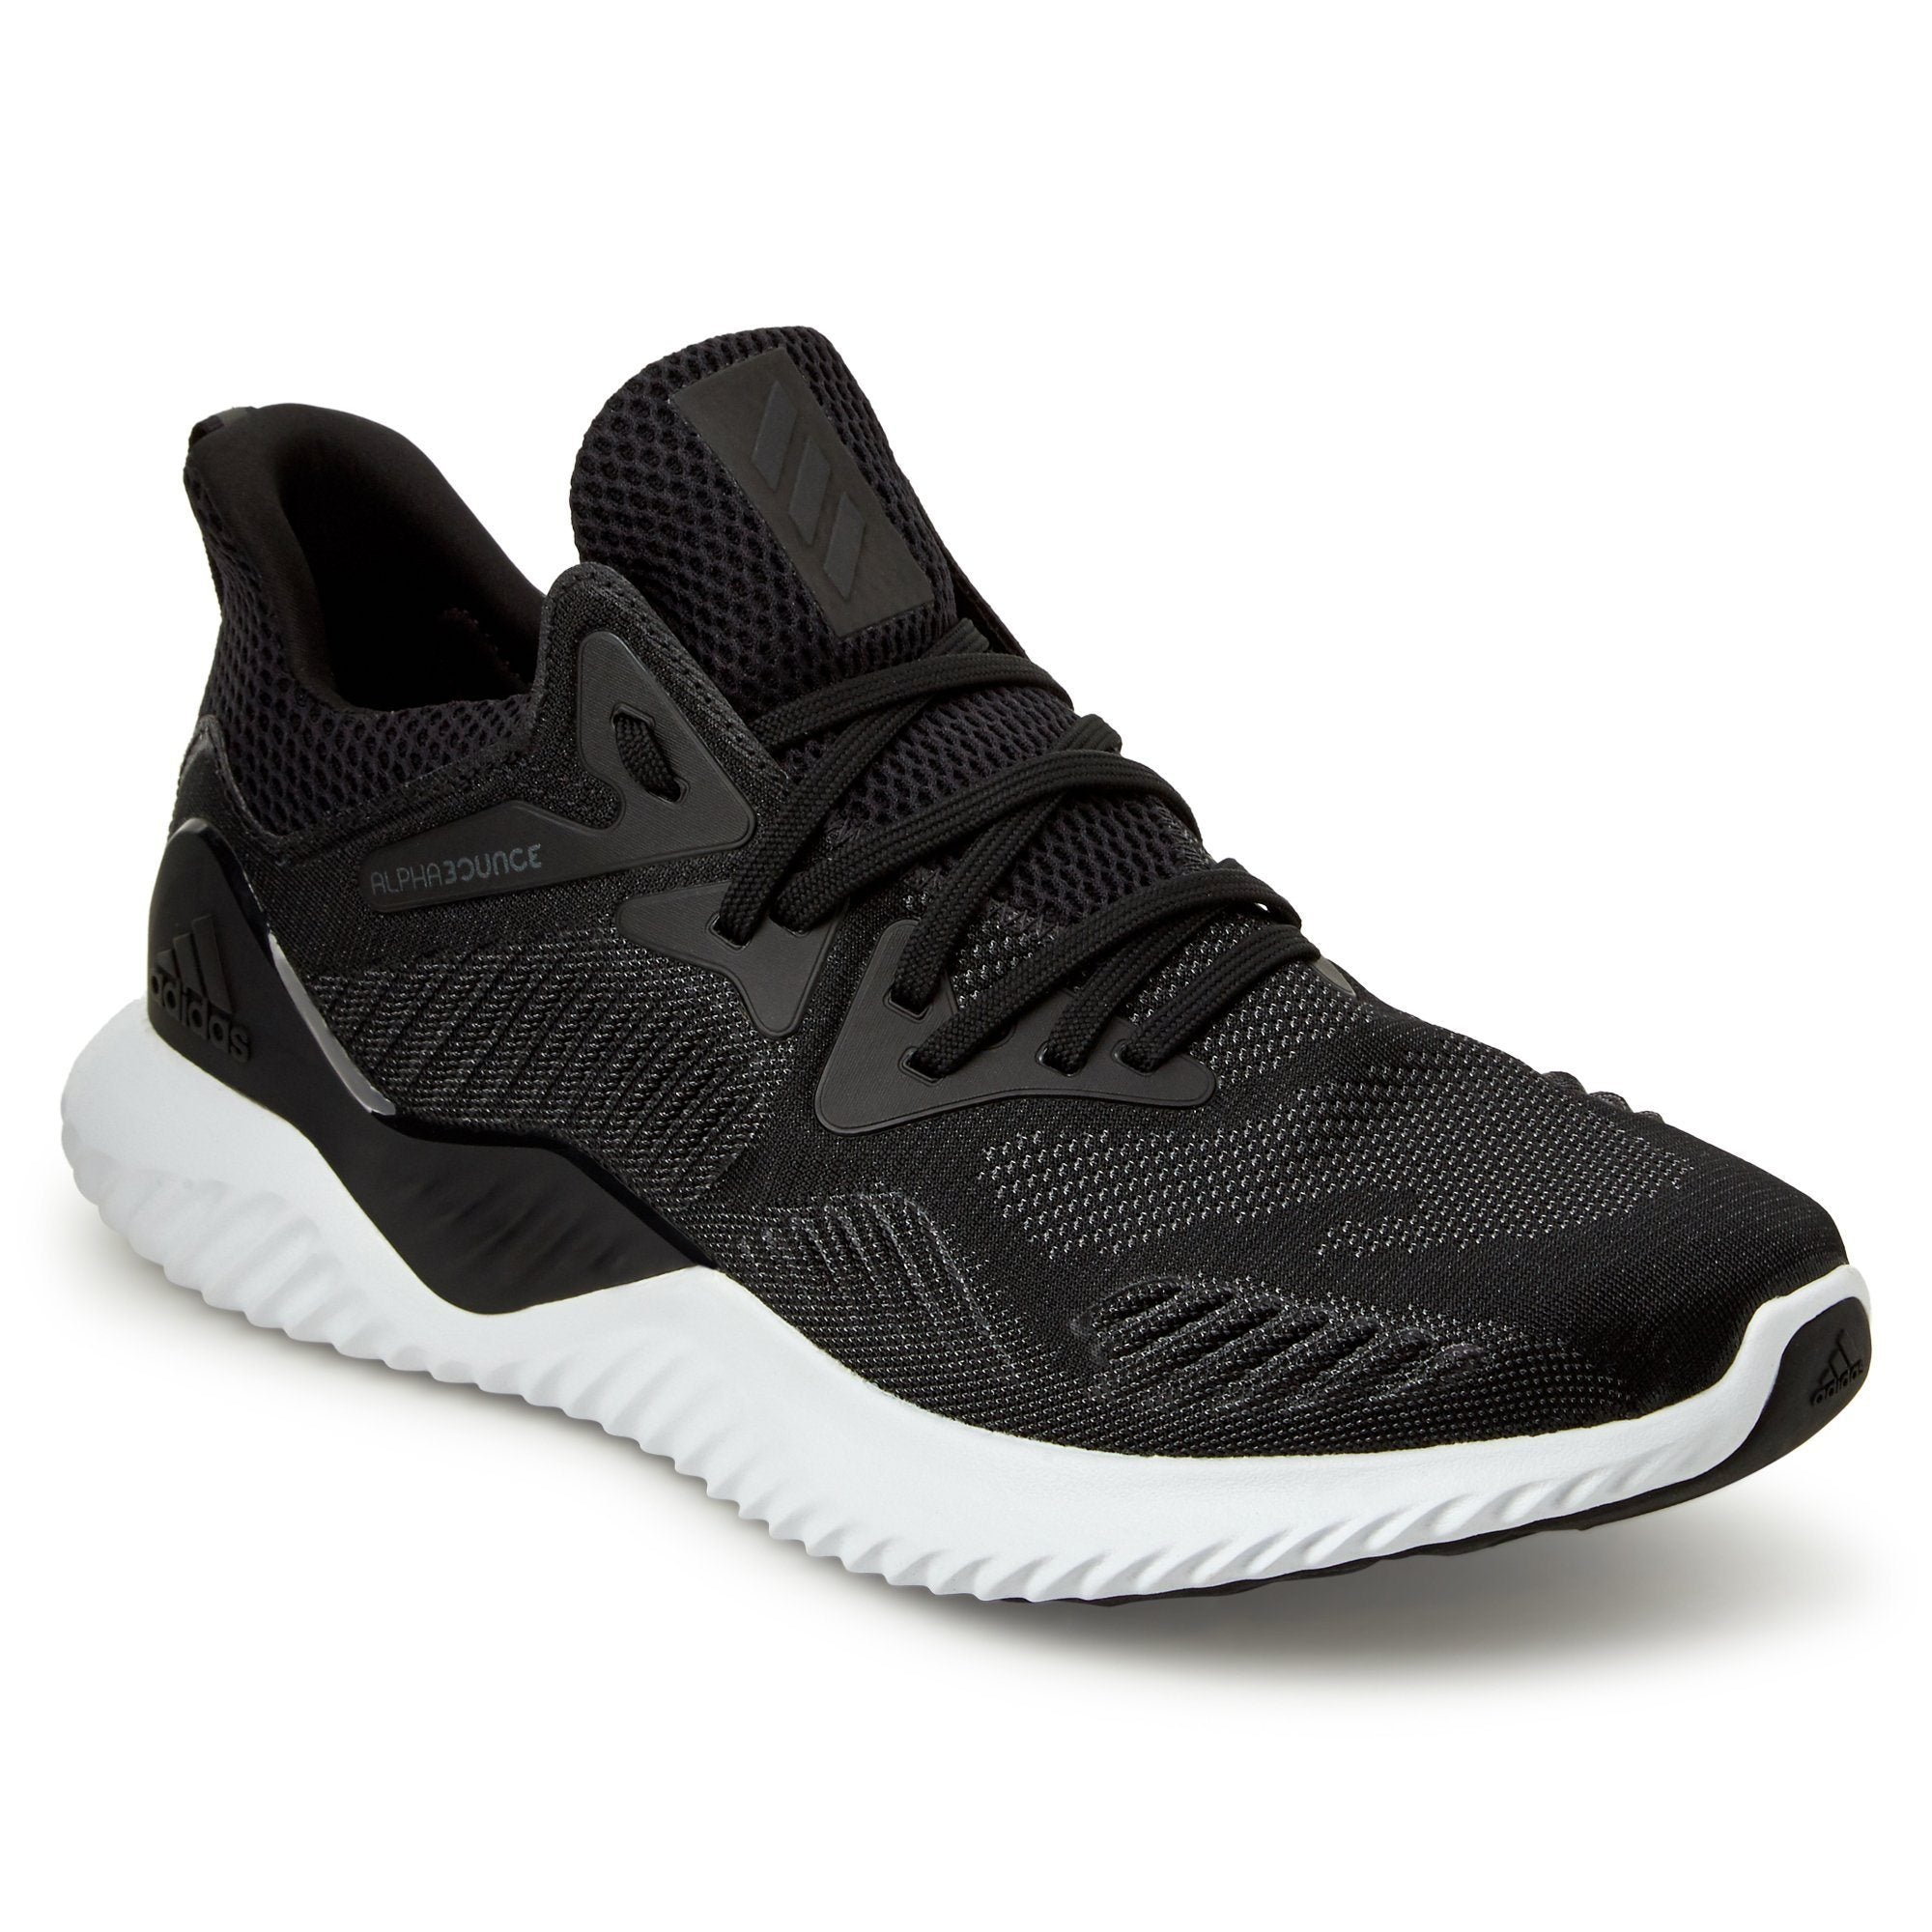 Adidas Men's Alphabounce Beyond Shoes - Core black/Core black/Ftwr White Footwear Adidas  (2022861209659)